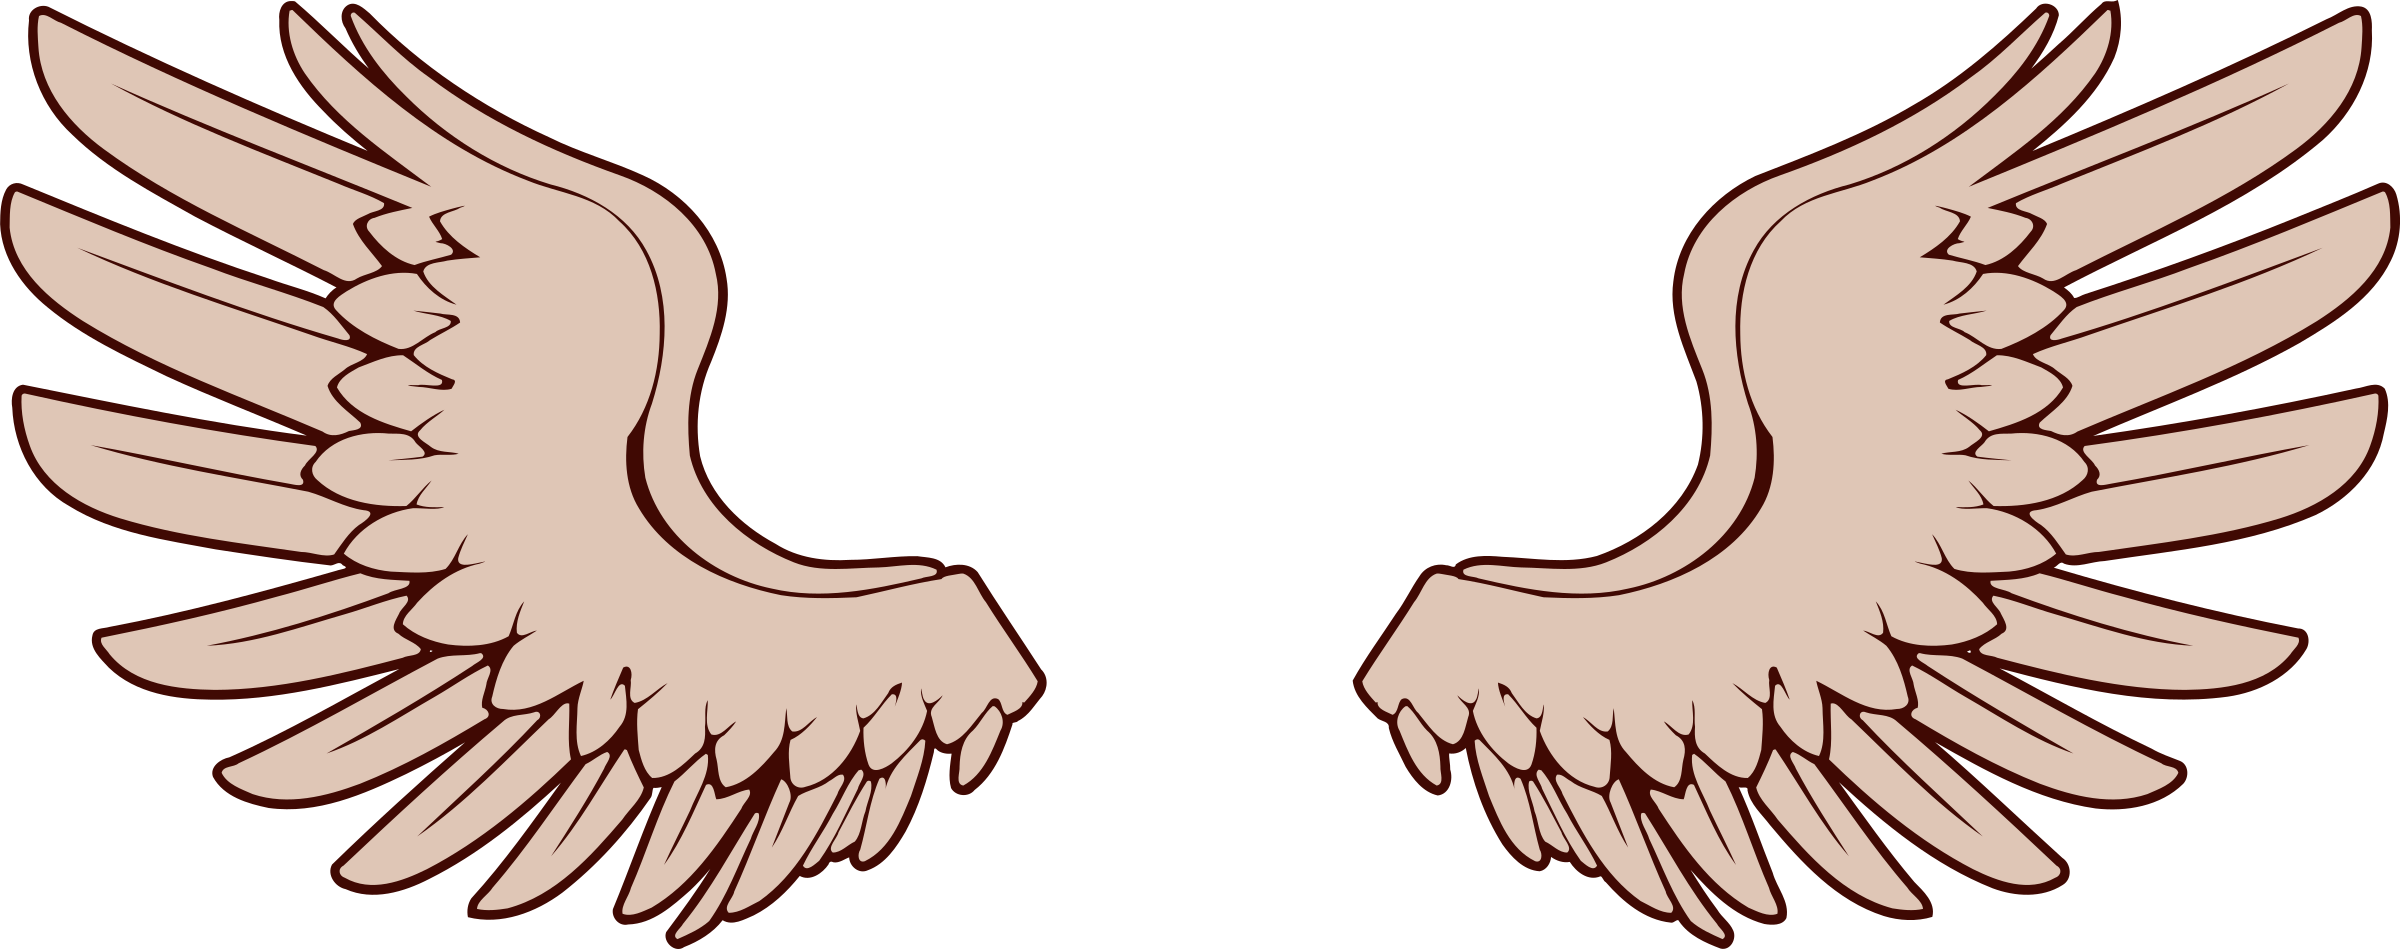 Wing clipart. Pair of spread